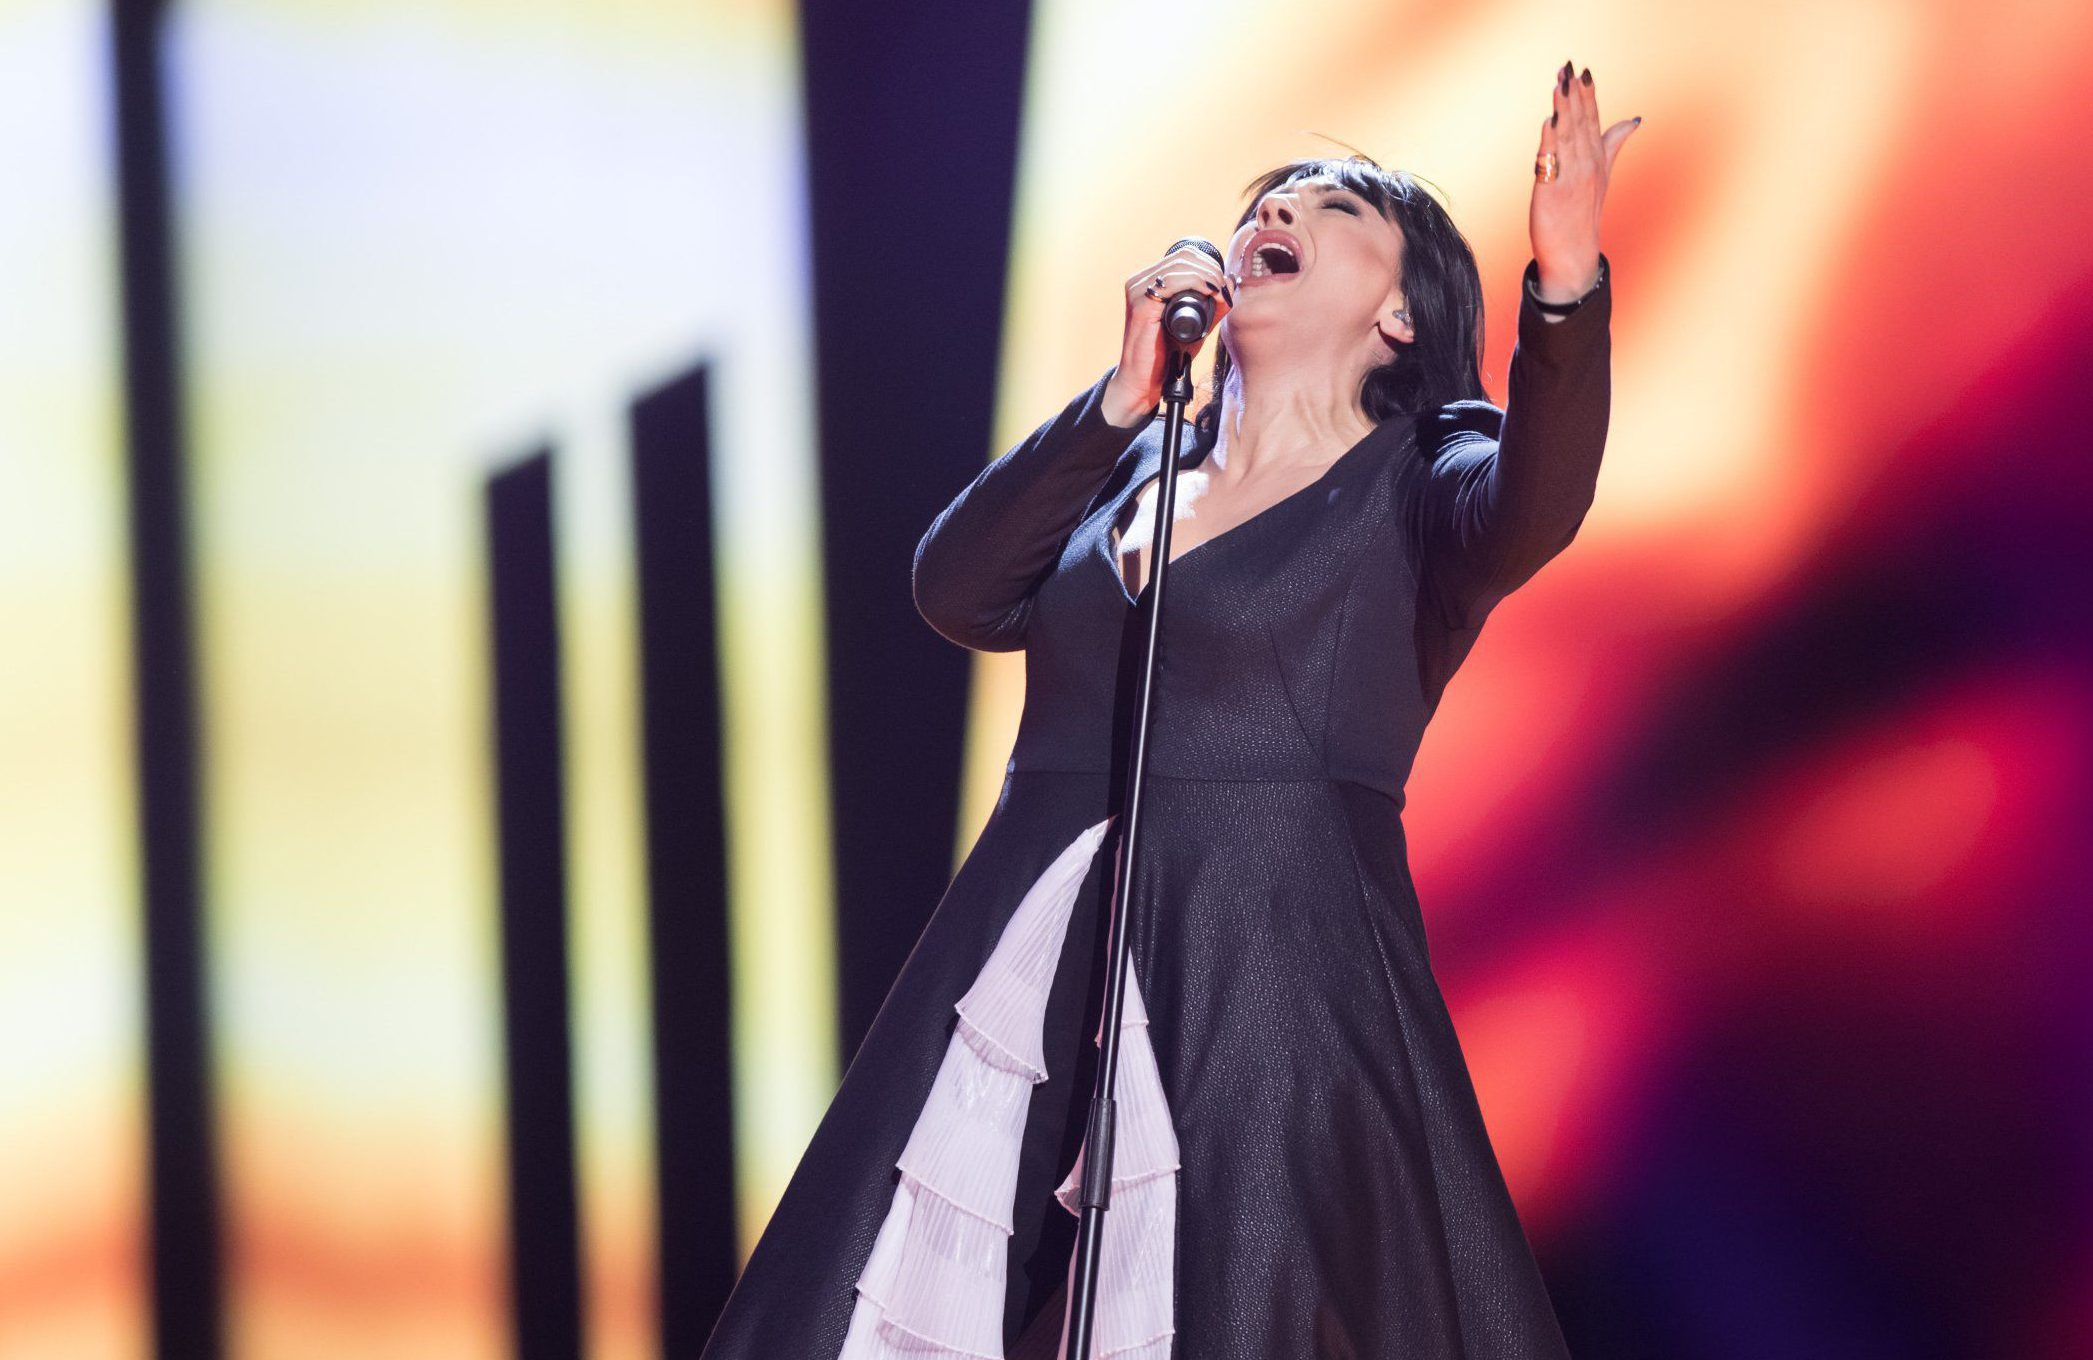 """Mandatory Credit: Photo by Rolf Klatt/REX/Shutterstock (5682998b) Kaliopi of Macedonia performs her song """"Dona"""" at the second semi-final show of the Eurovision Song Contest 2016 in Stockholm, Sweden on May 12, 2016. Eurovision Song Contest, Semi Finals, Stockholm, Sweden - 12 May 2016"""